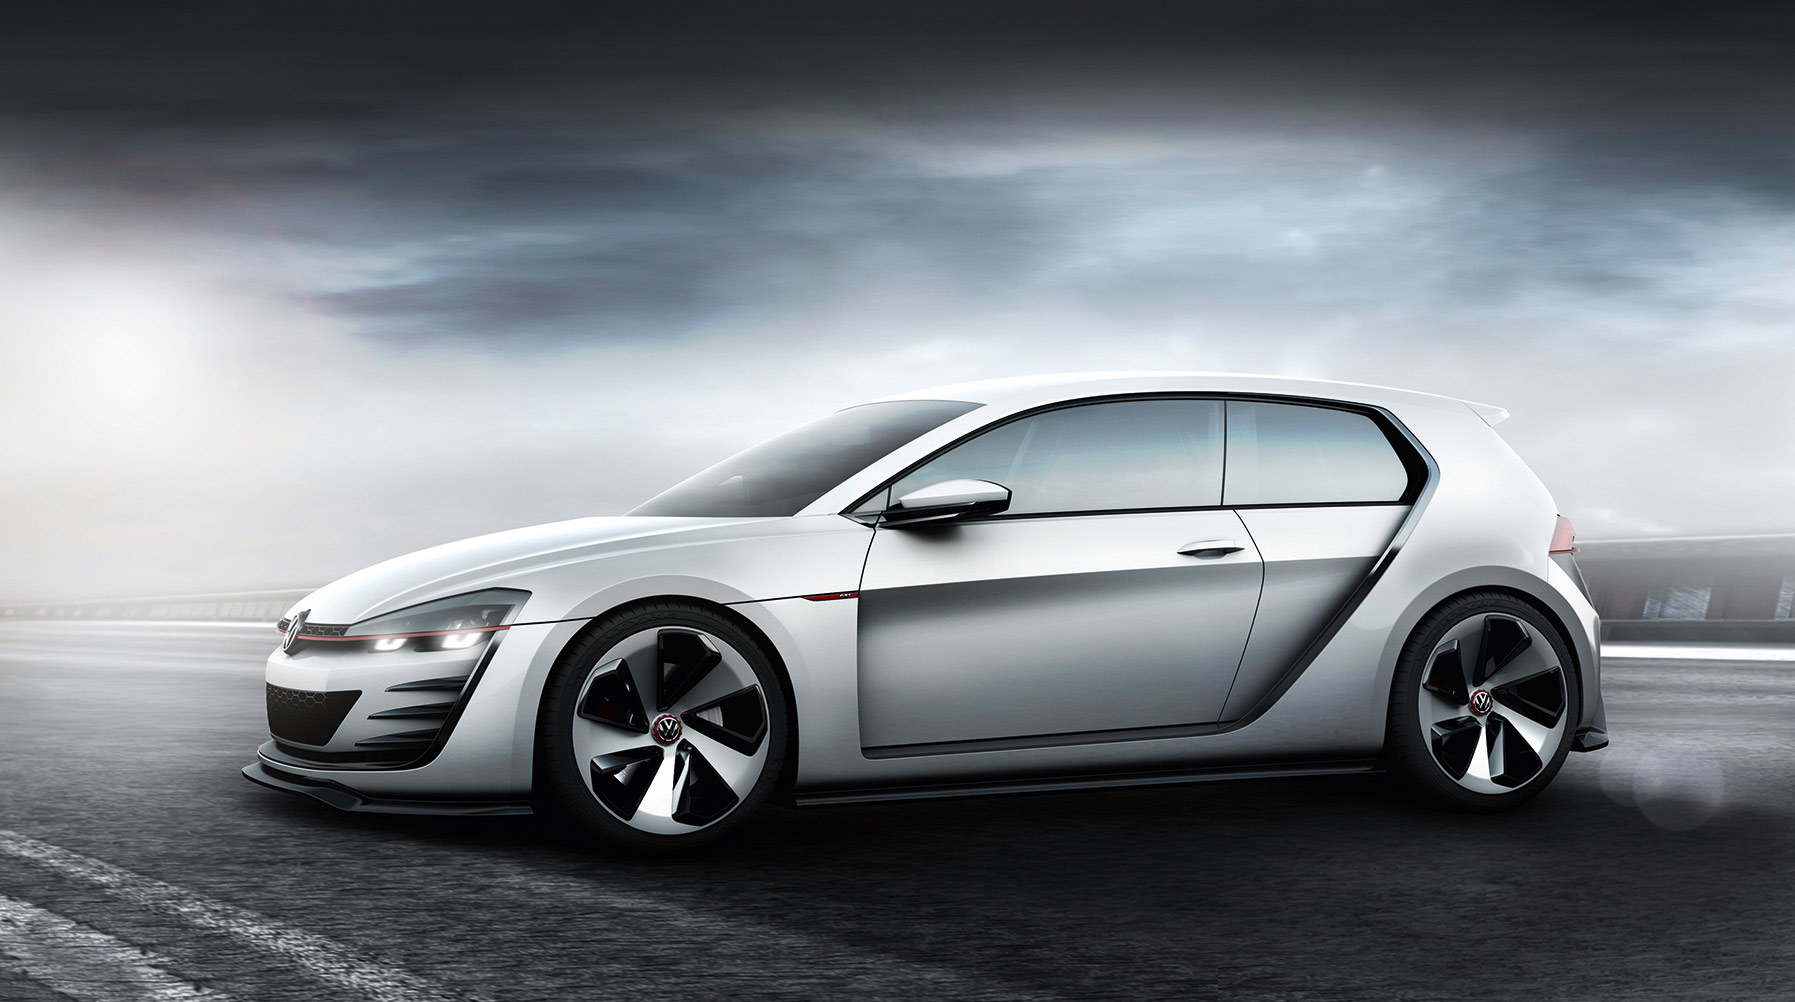 volkswagen-design-vision-gti-worthersee-007